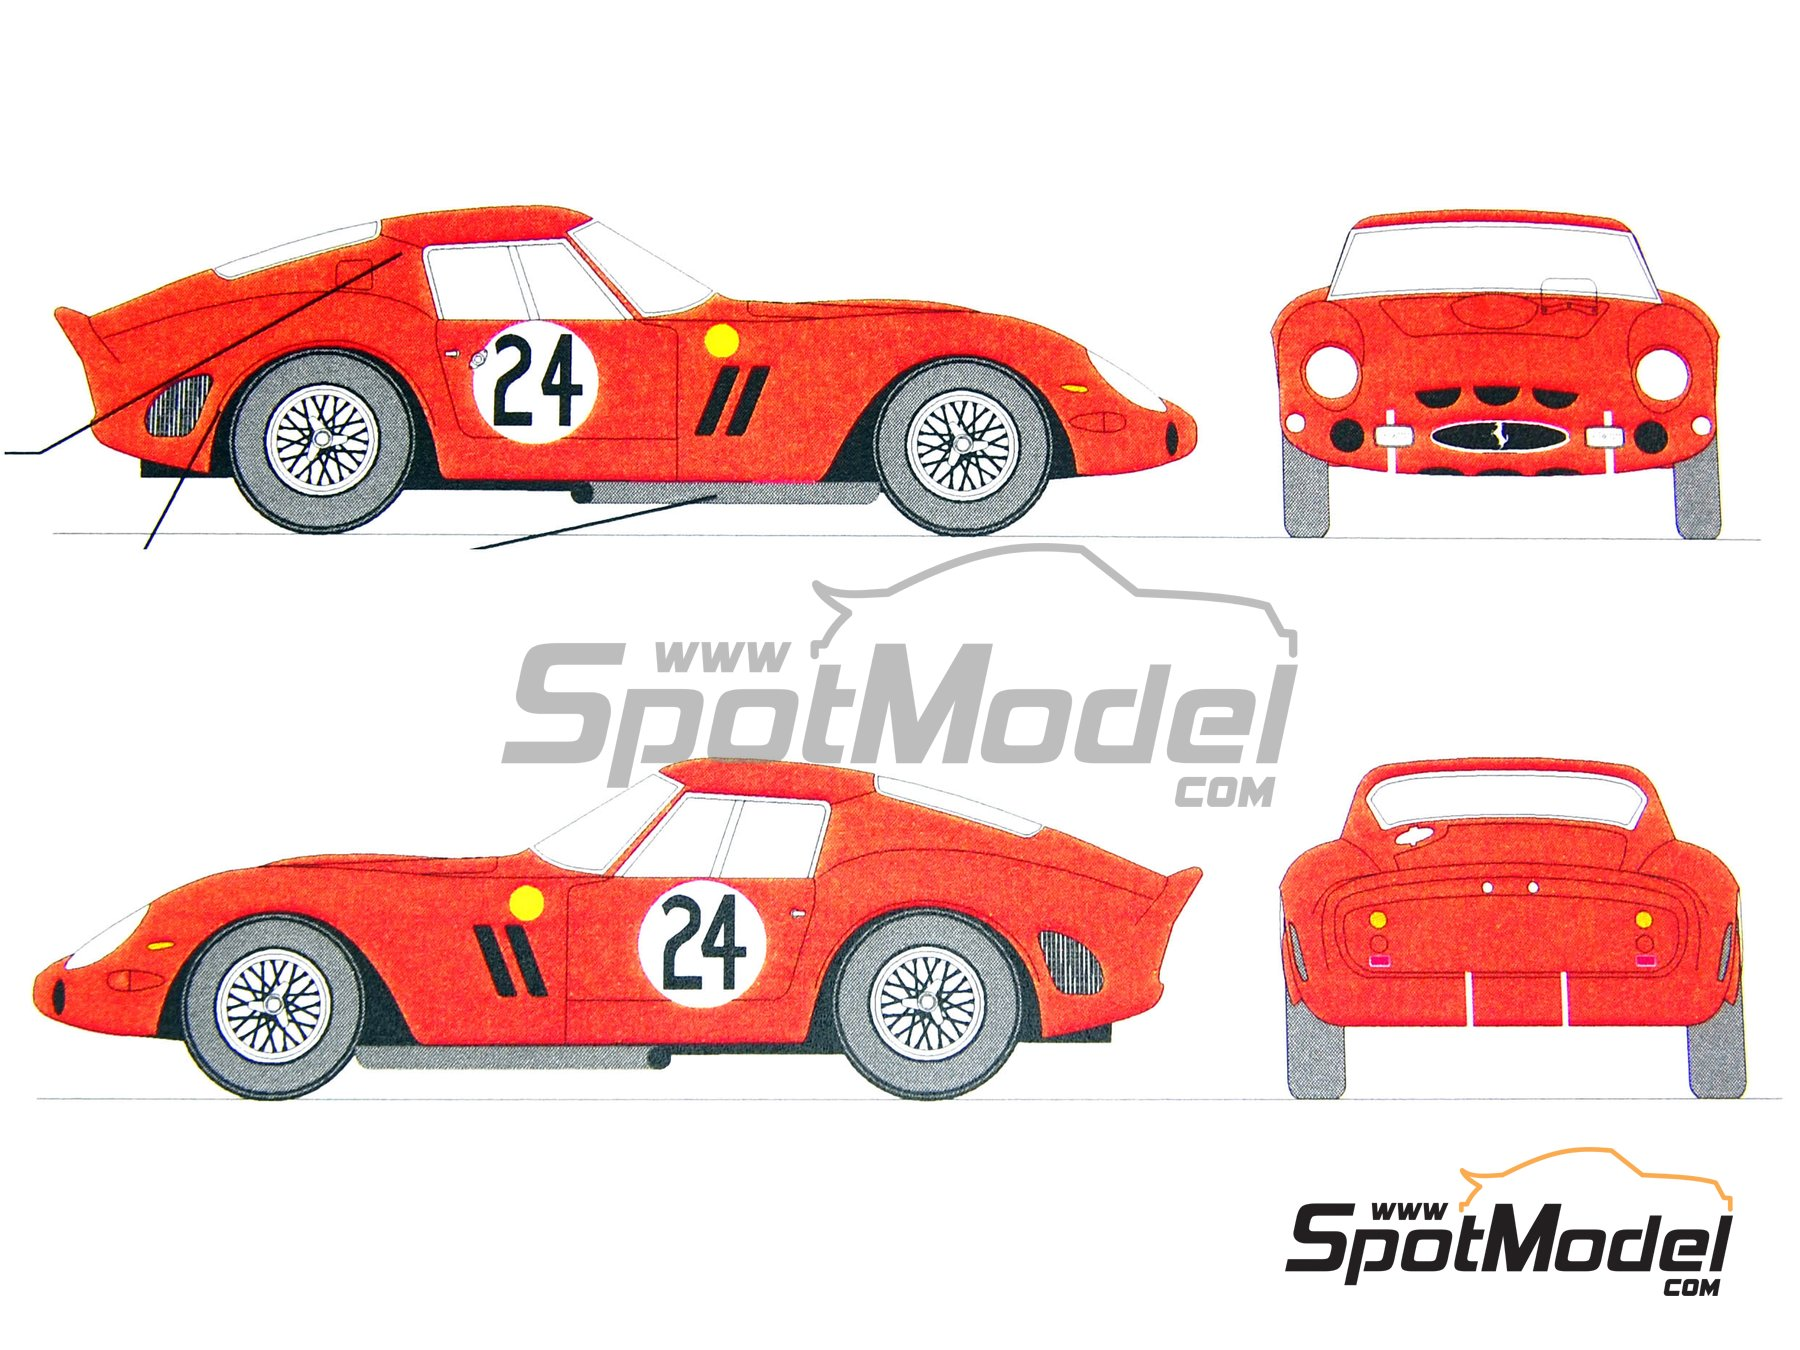 renaissance models marking livery 1 24 scale ferrari 250 gto 24 25 172 jean 39 beurlys. Black Bedroom Furniture Sets. Home Design Ideas